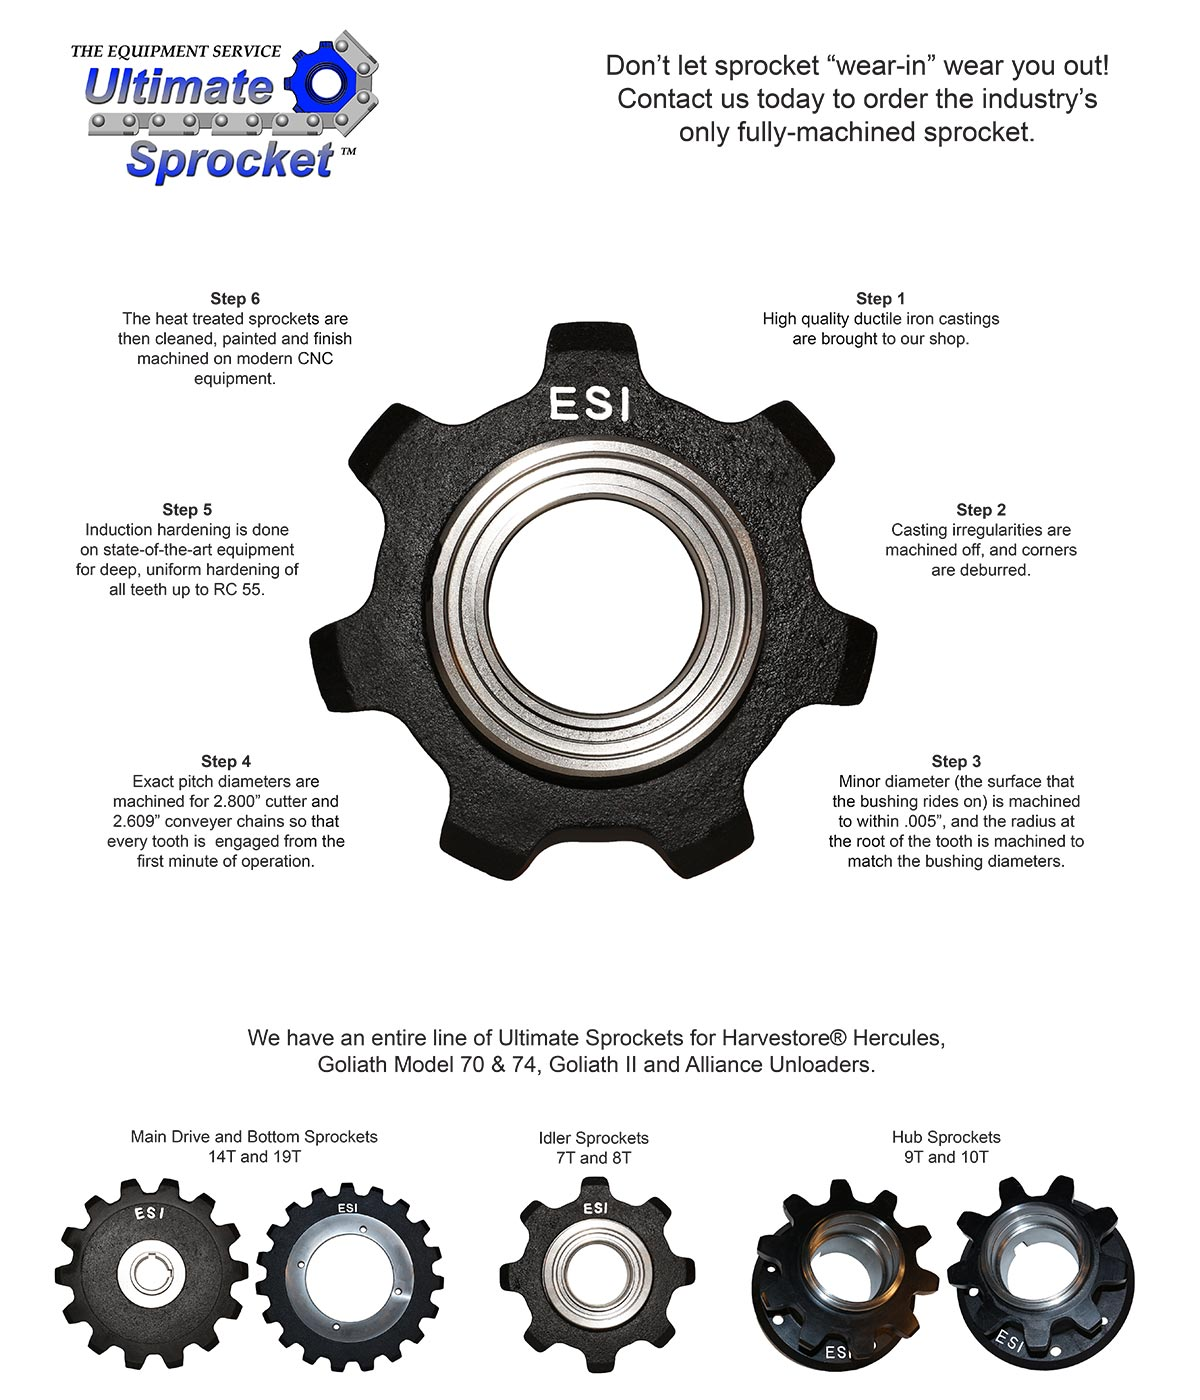 The Ultimate Sprocket